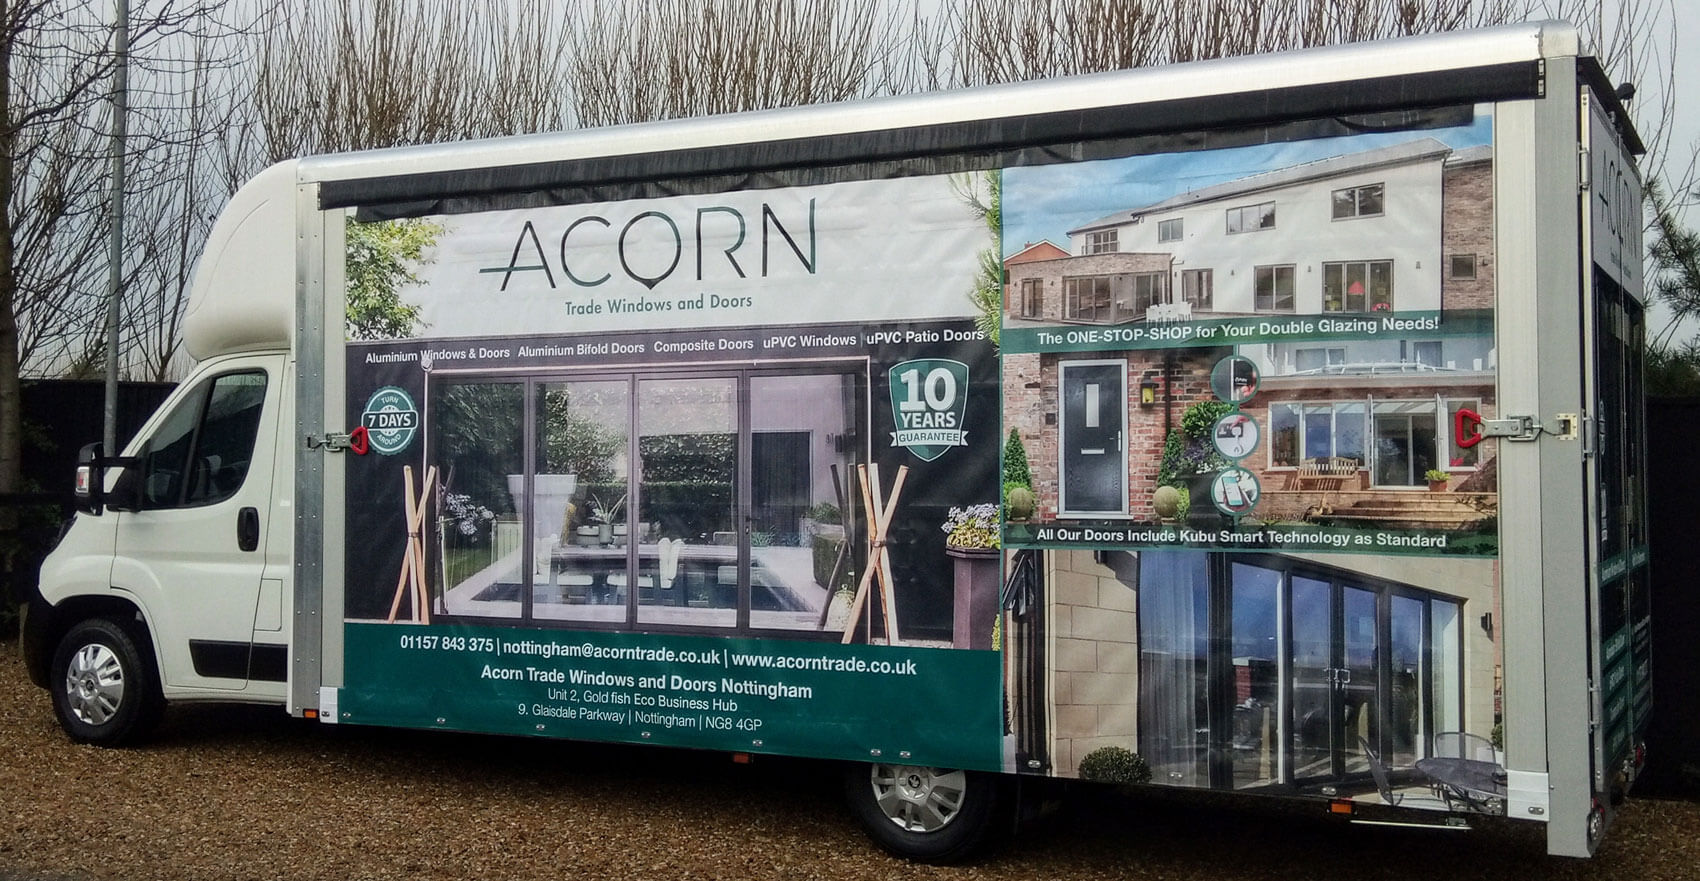 Acorn Trade Windows and Doors: Hitting the Nottingham Roads!